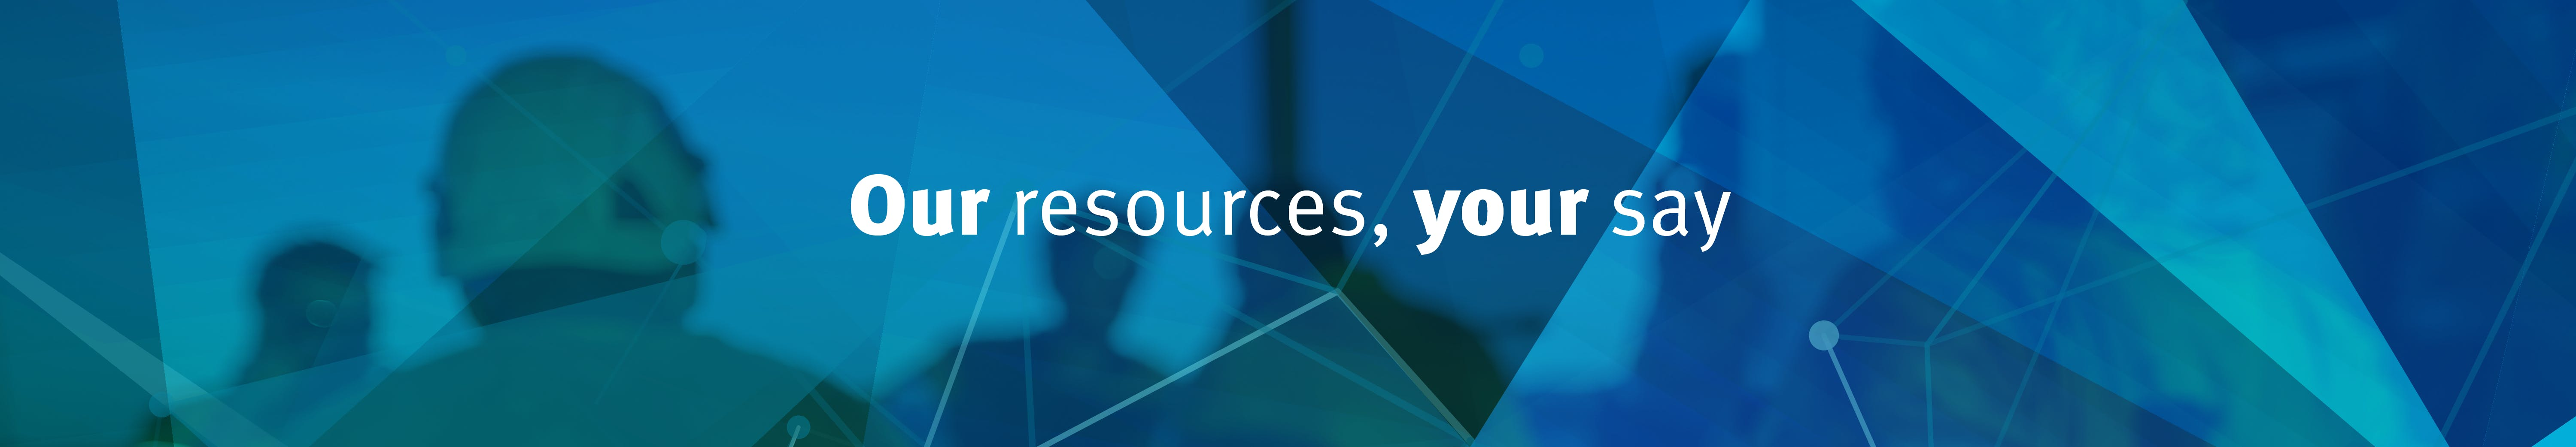 Our resources, your say